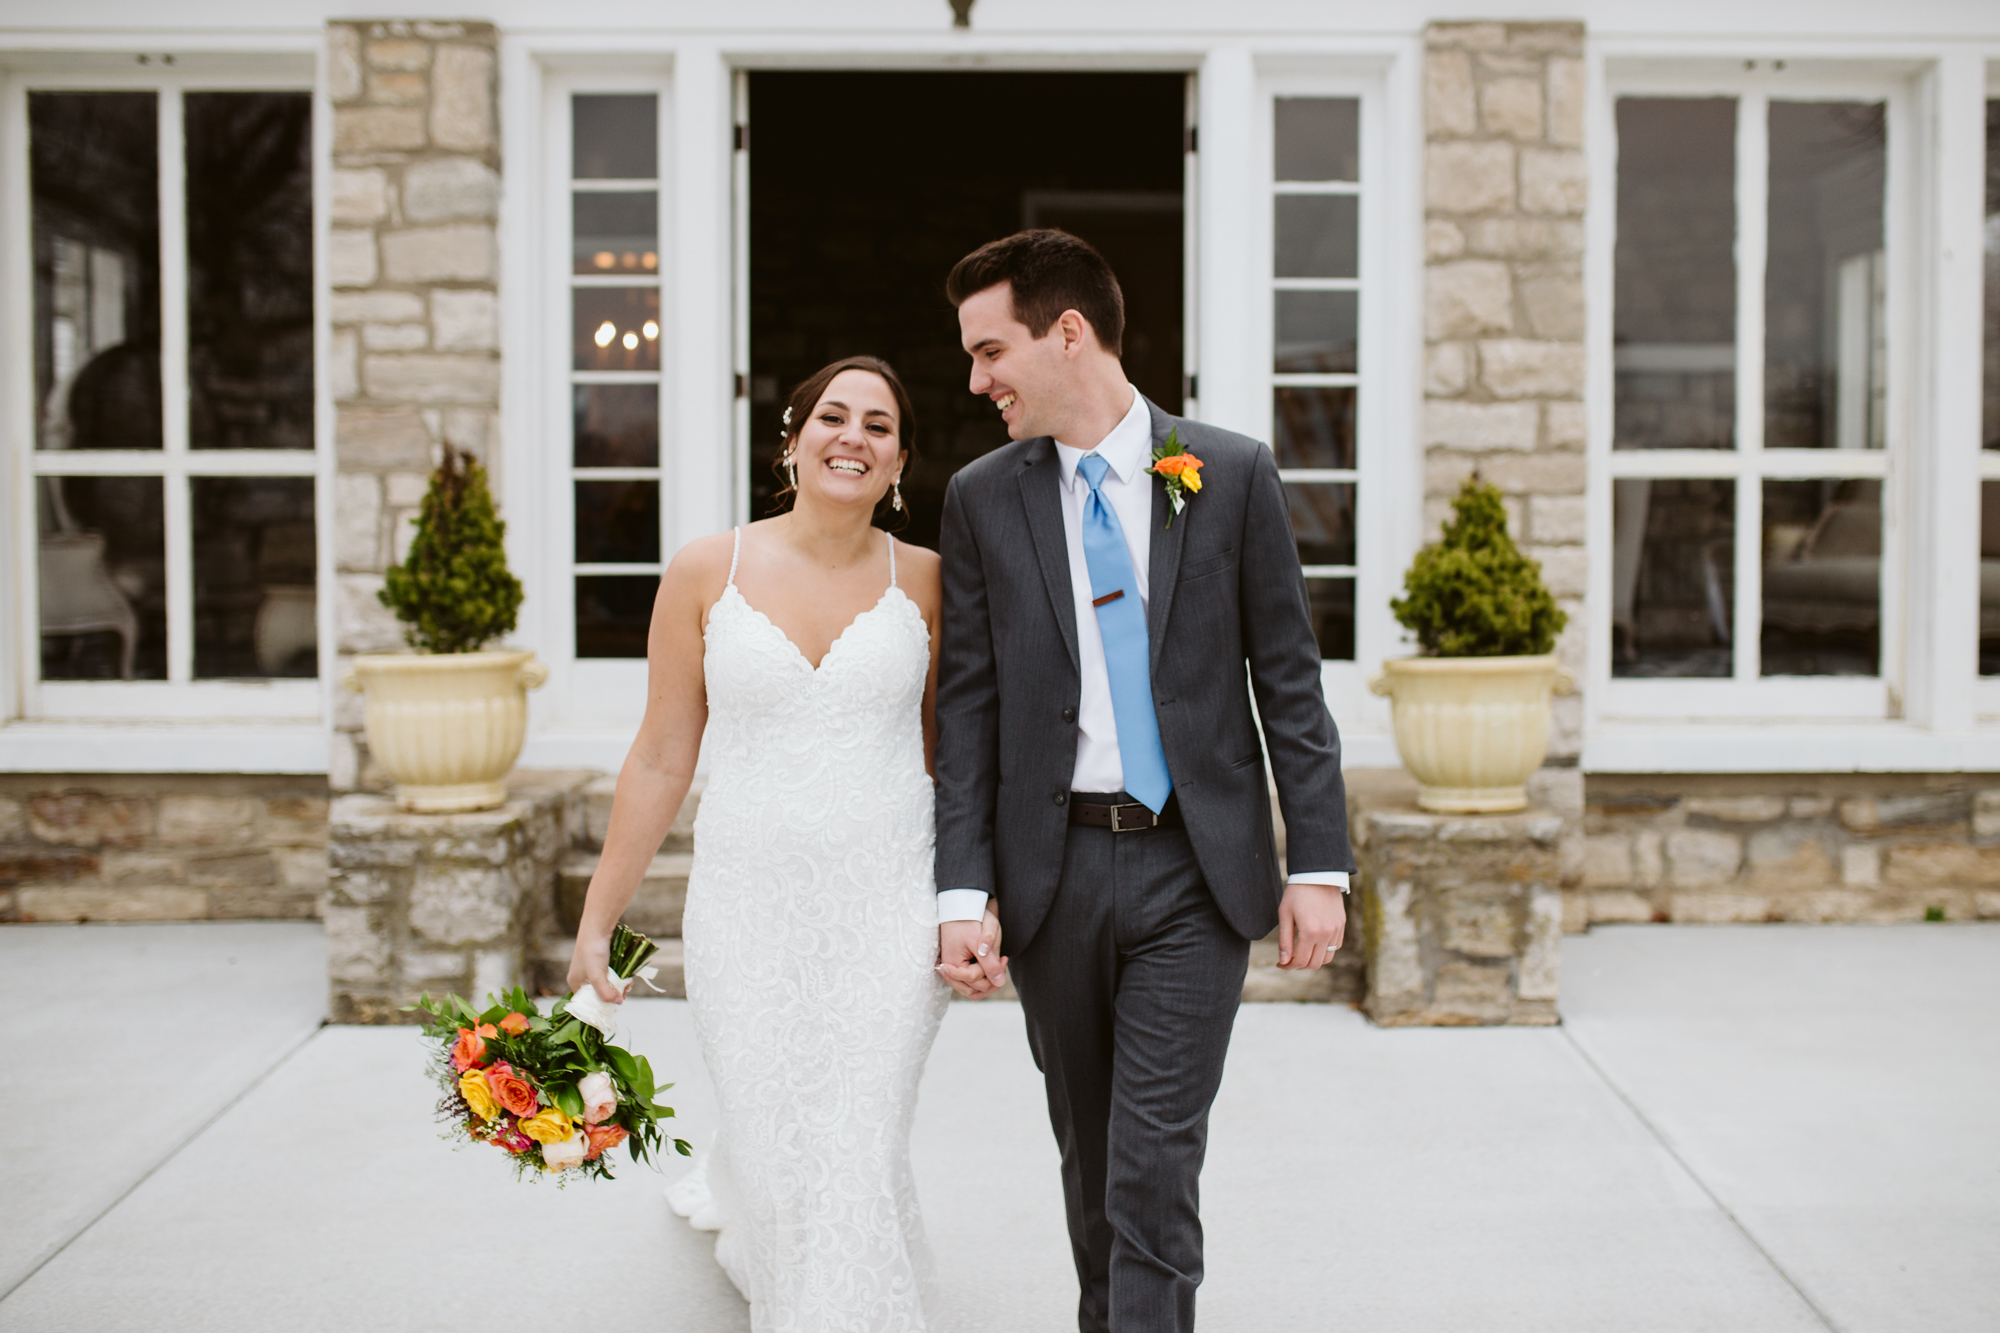 Stone House of St Charles Missouri Wedding